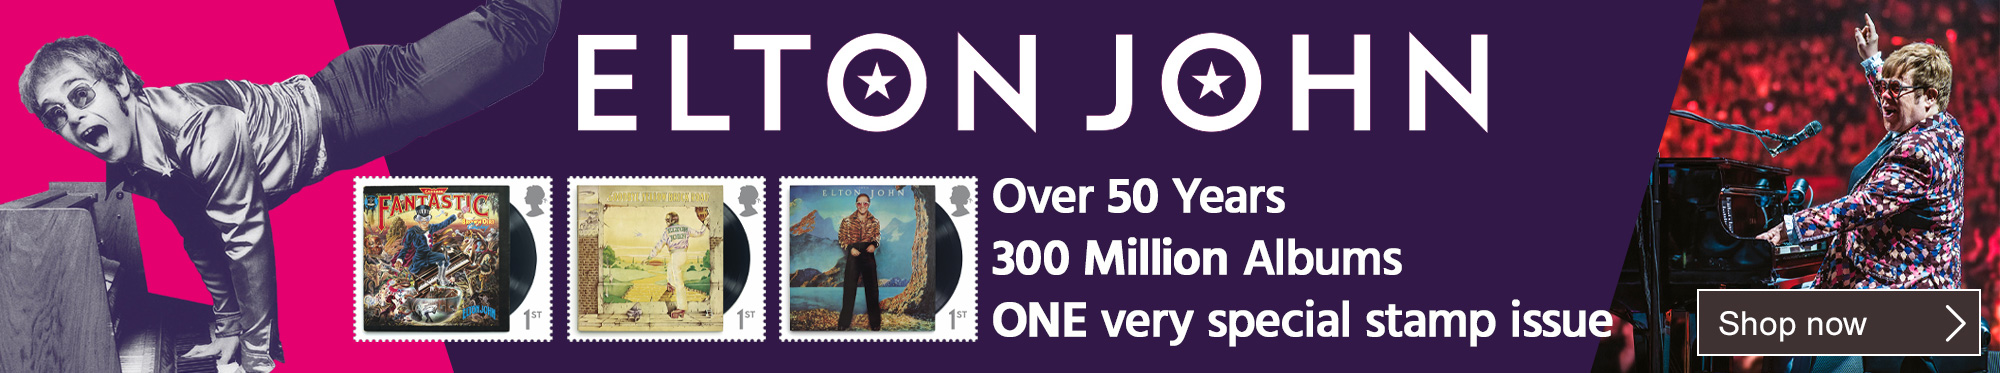 Elton John - One Very Special Stamp Issue